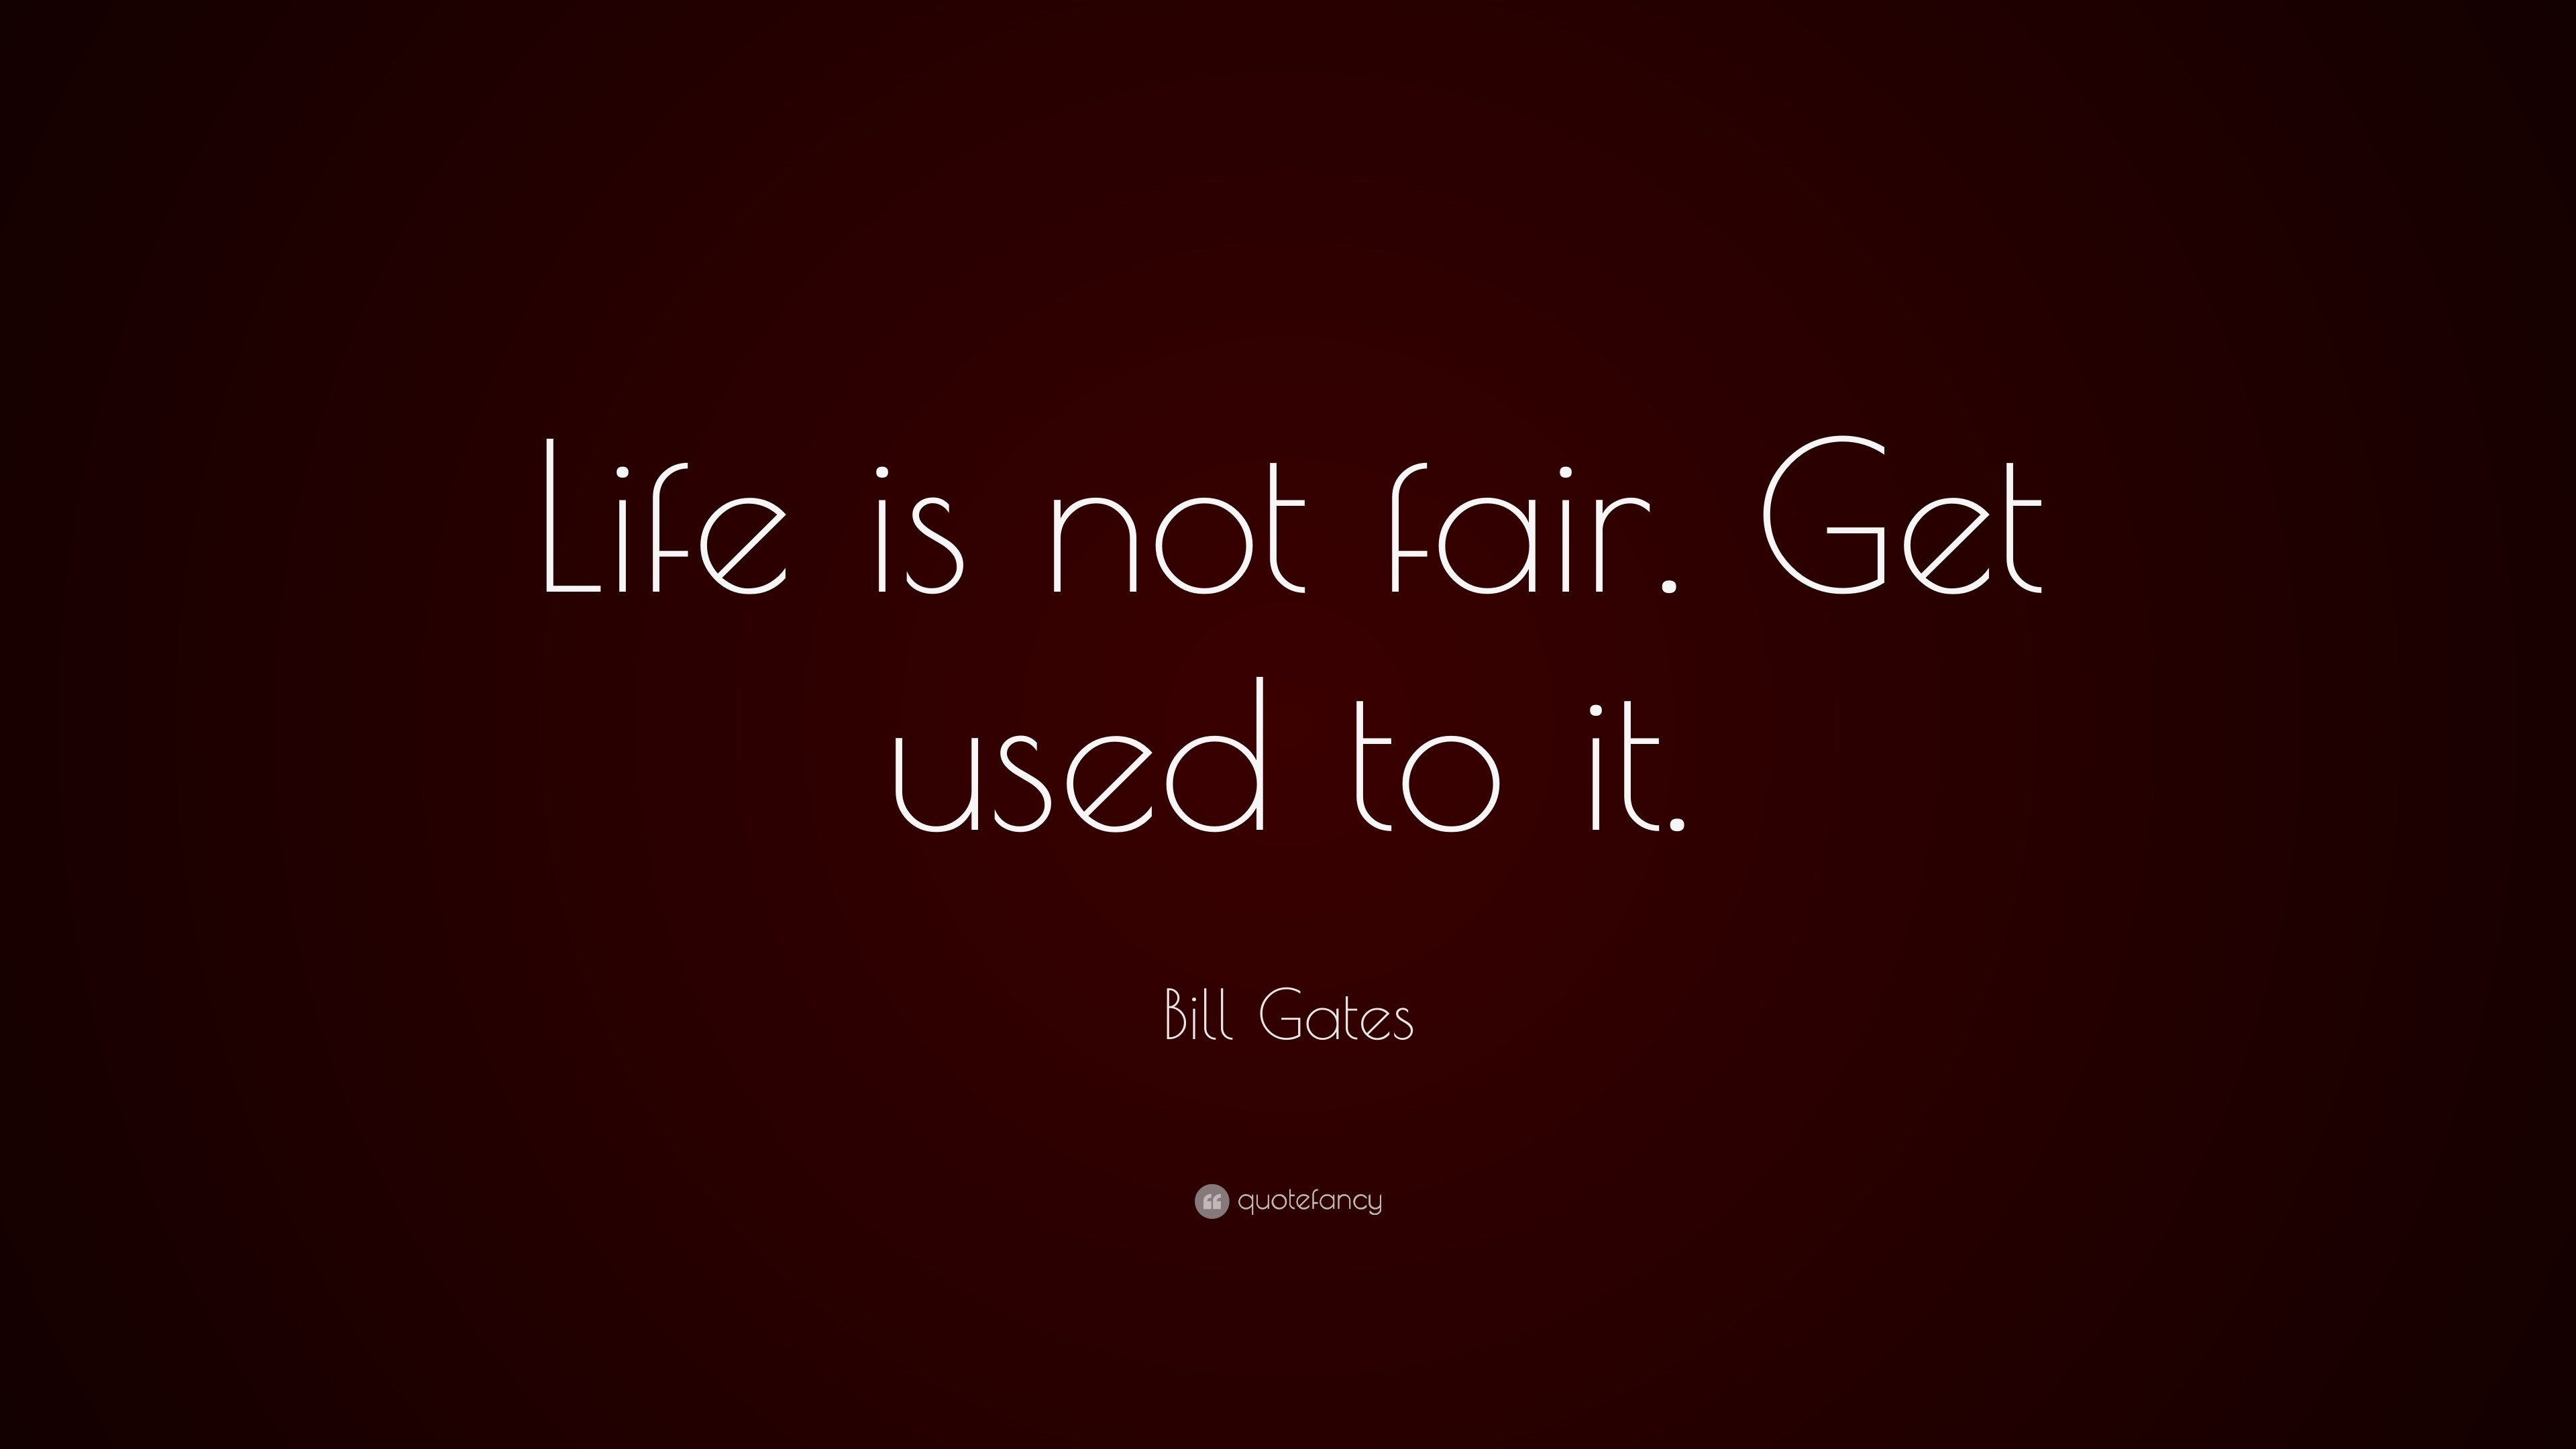 Quotes about Not fair life (65 quotes)